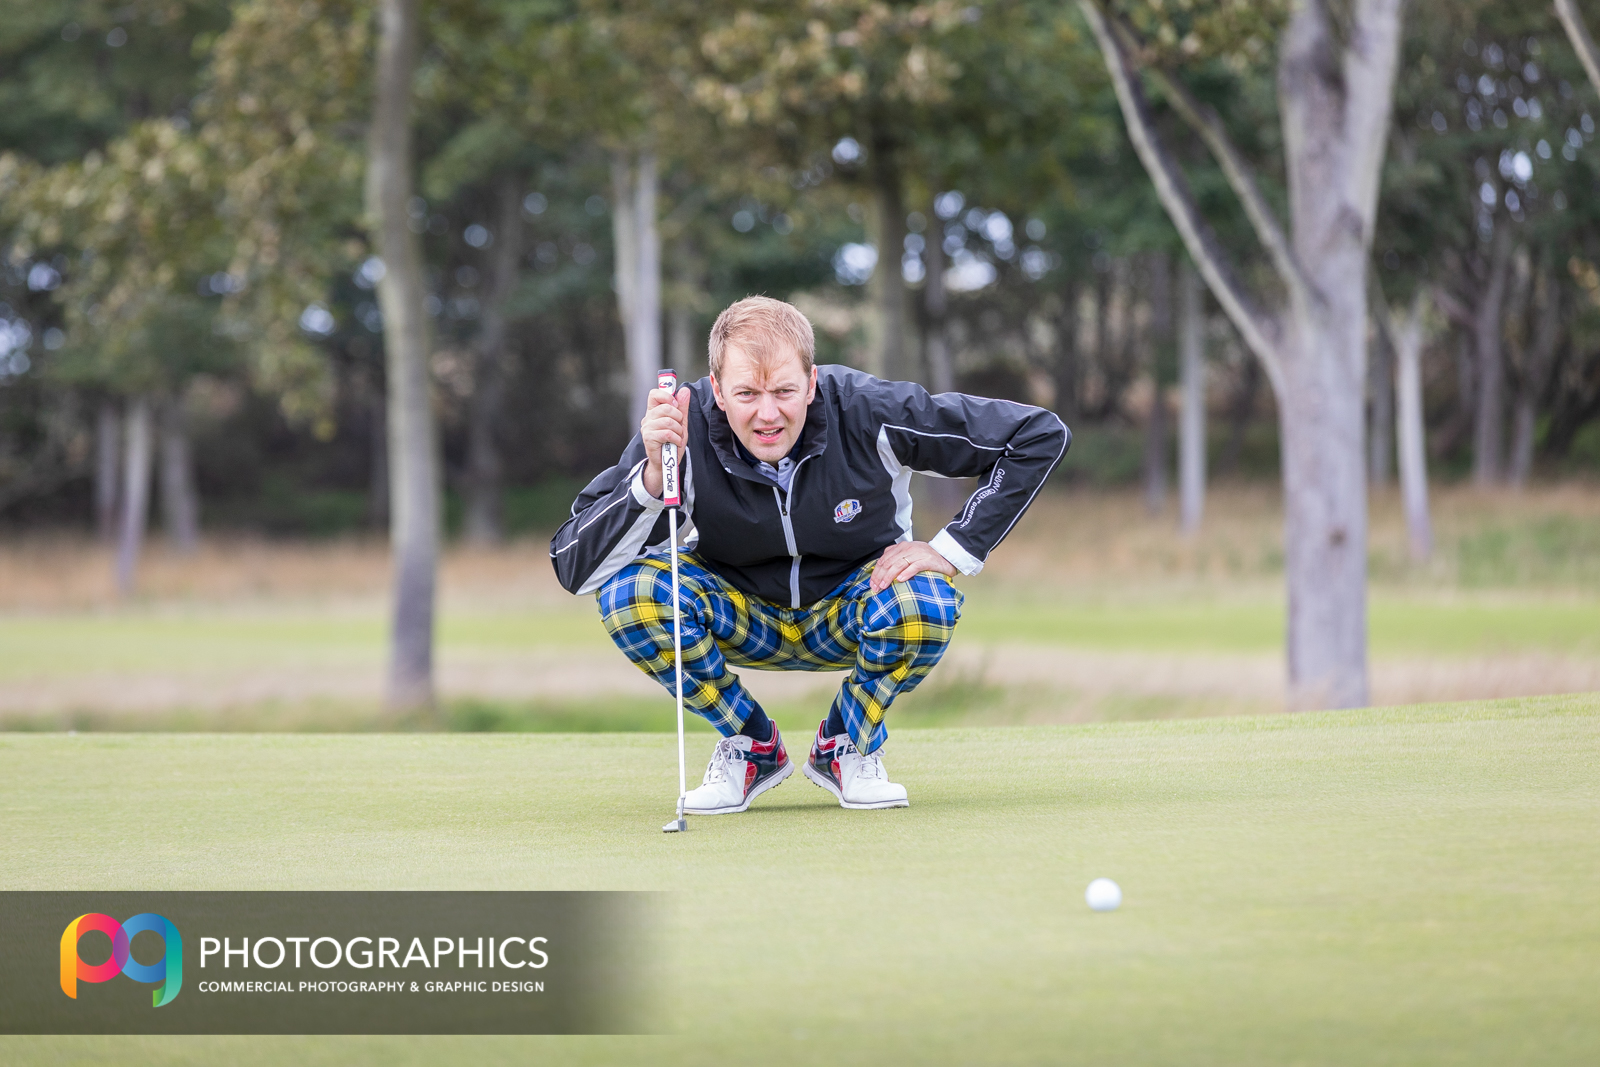 charity-golf-pr-event-photography-glasgow-edinburgh-scotland-20.jpg